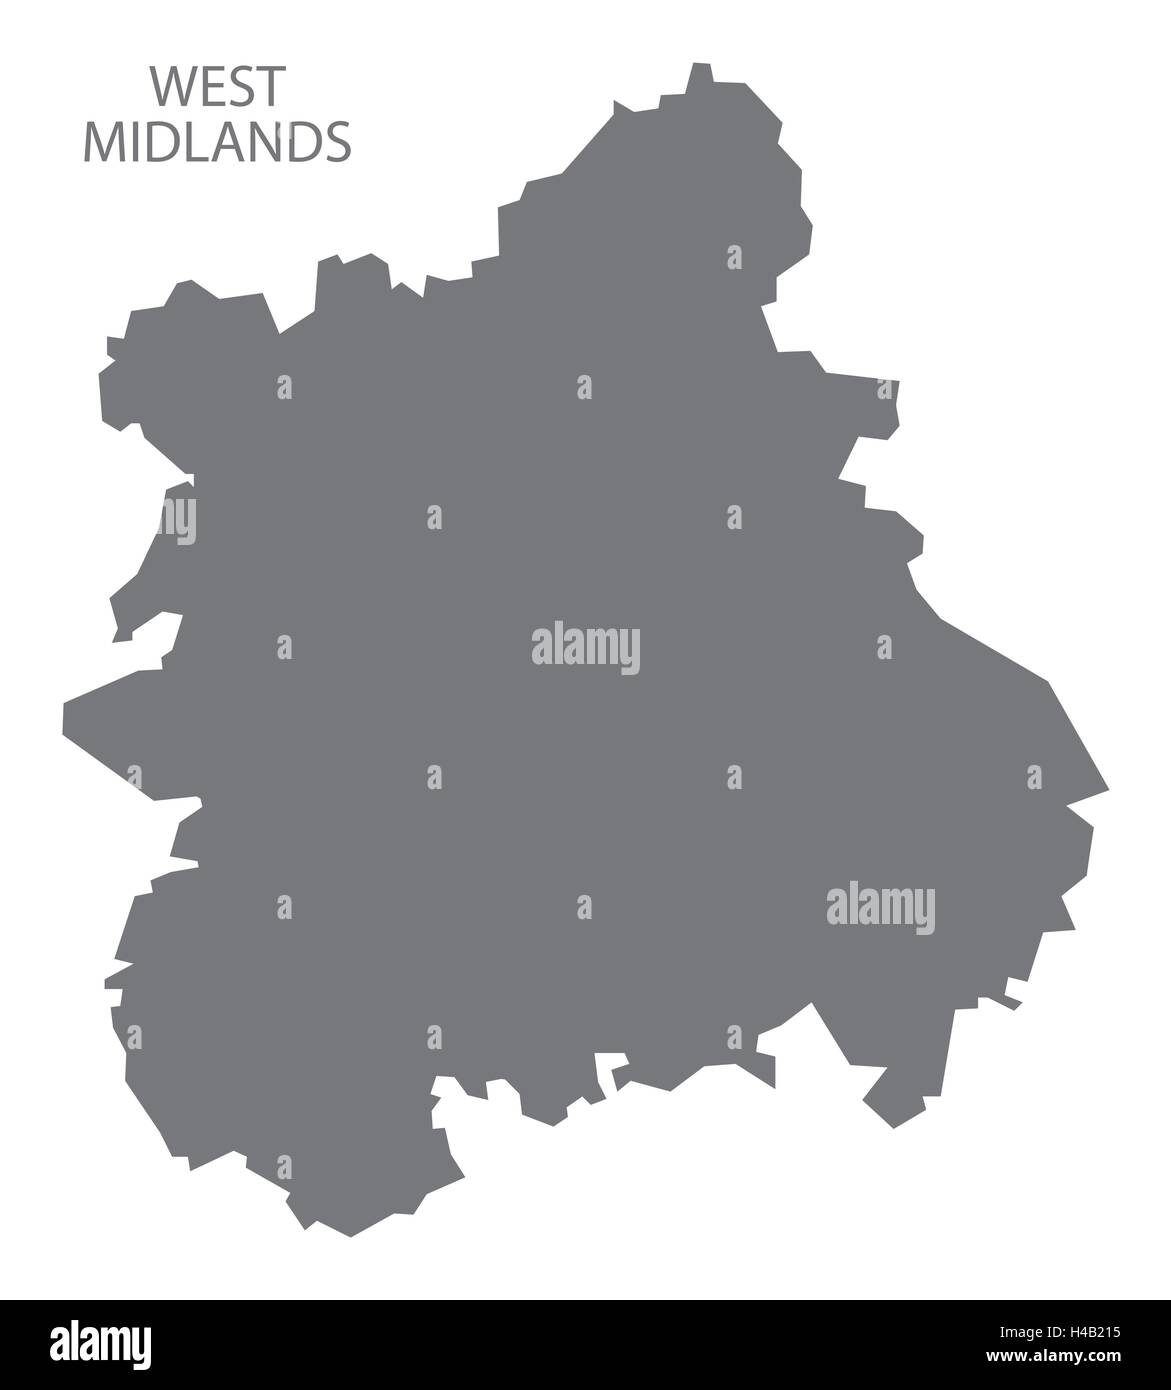 Map Of England Midlands.Grey County Map Of England West Midlands Stock Vector Art